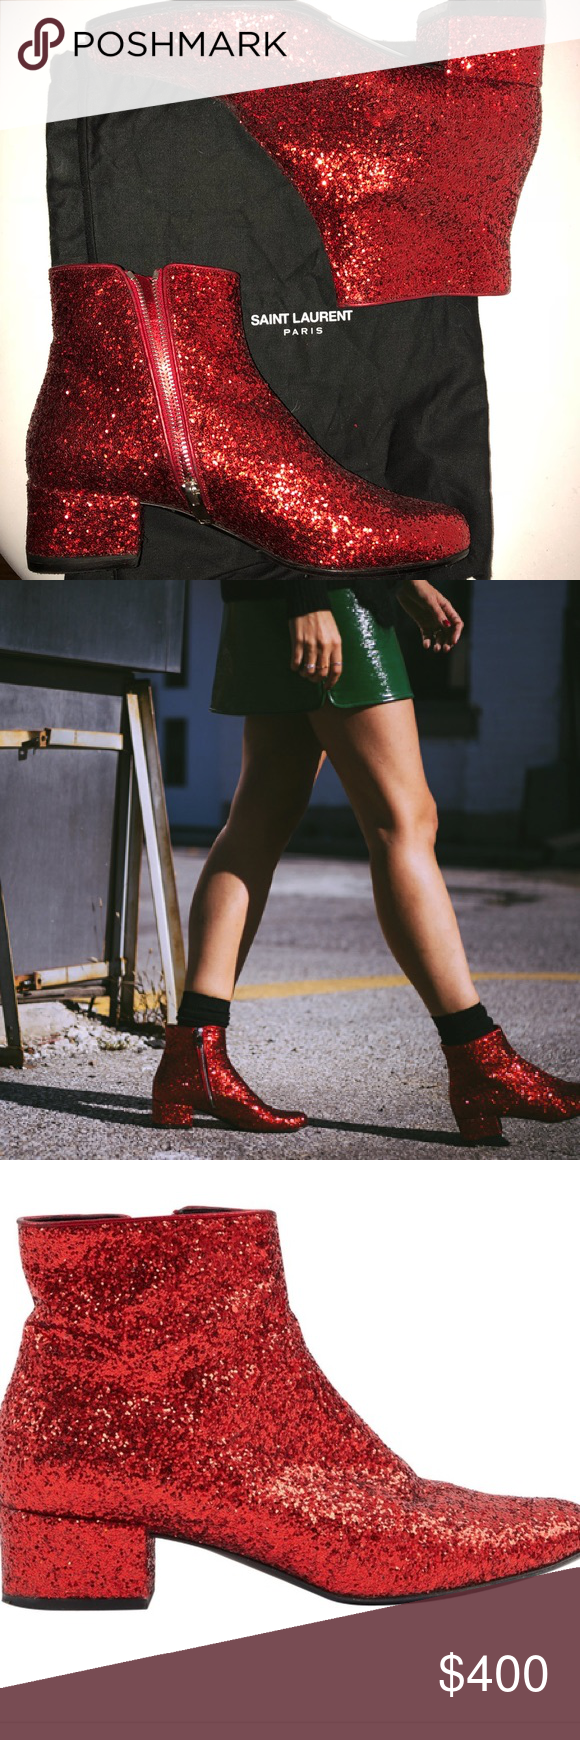 aad6601b827 YVES SAINT LAURENT RED GLITTER BOOTS Red glitter sparkle booties!! Never  worn. Comes